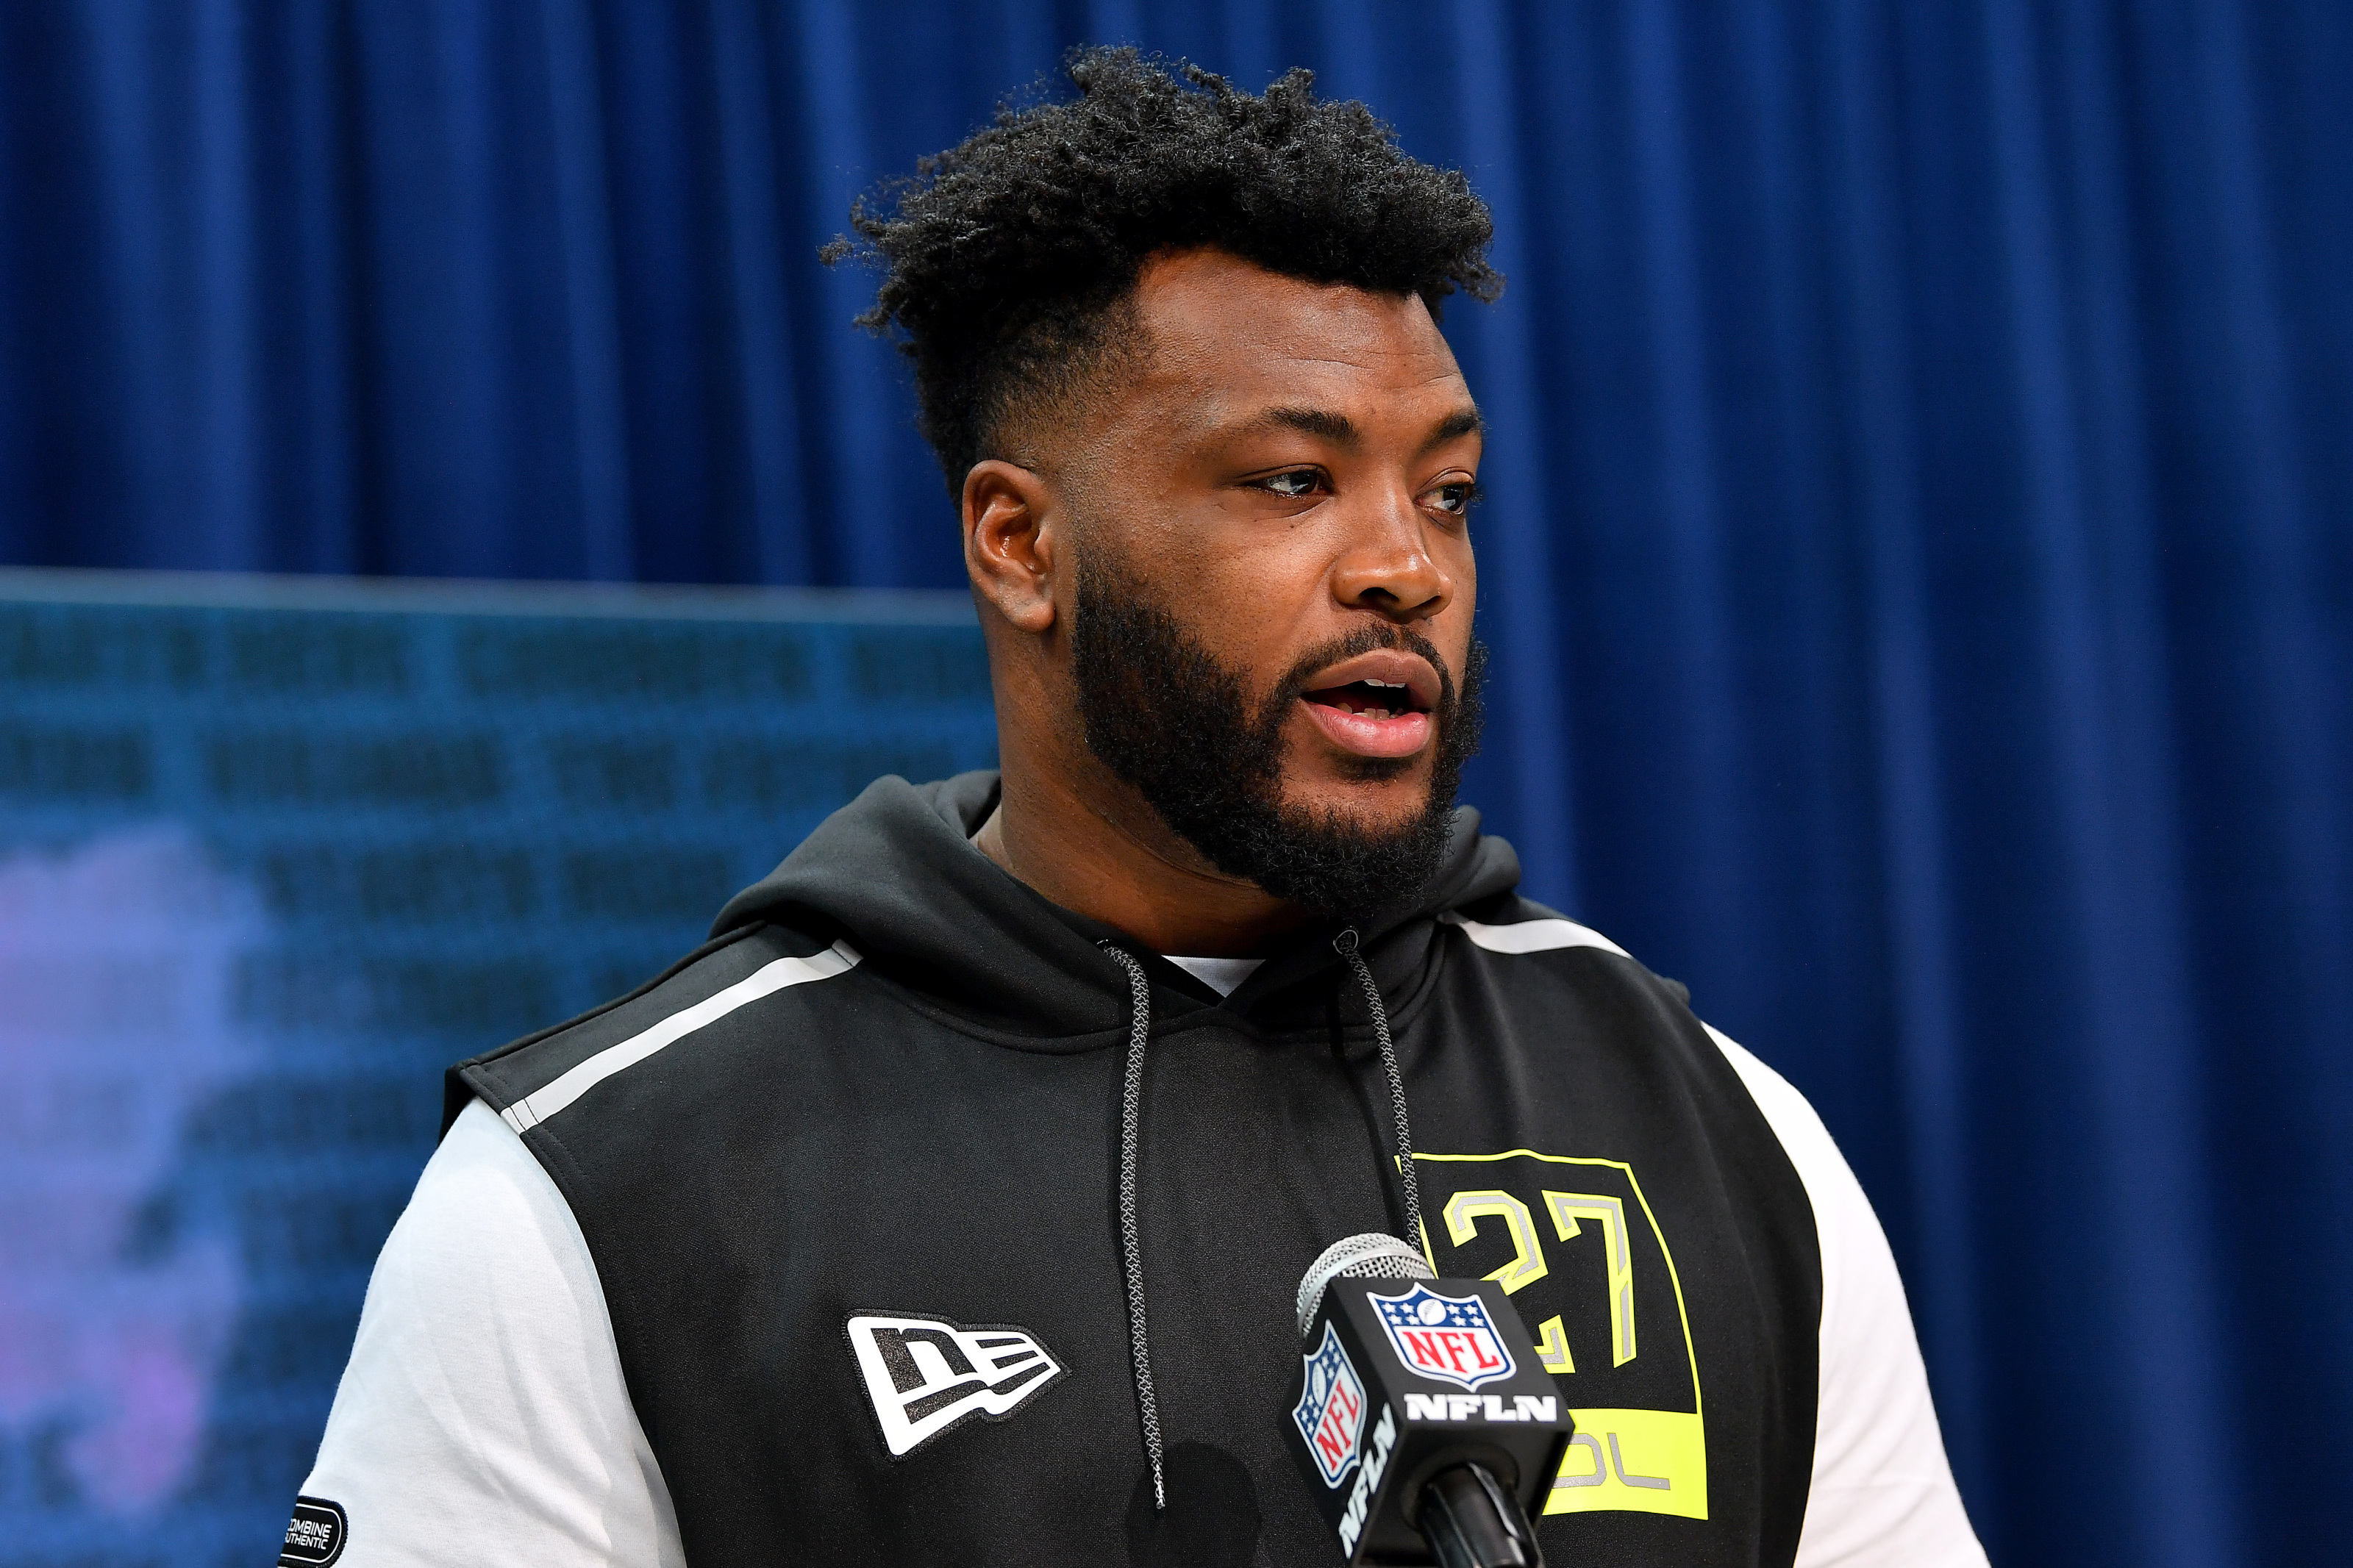 Tennessee Titans 7-round 2020 NFL Mock Draft competition, vote now